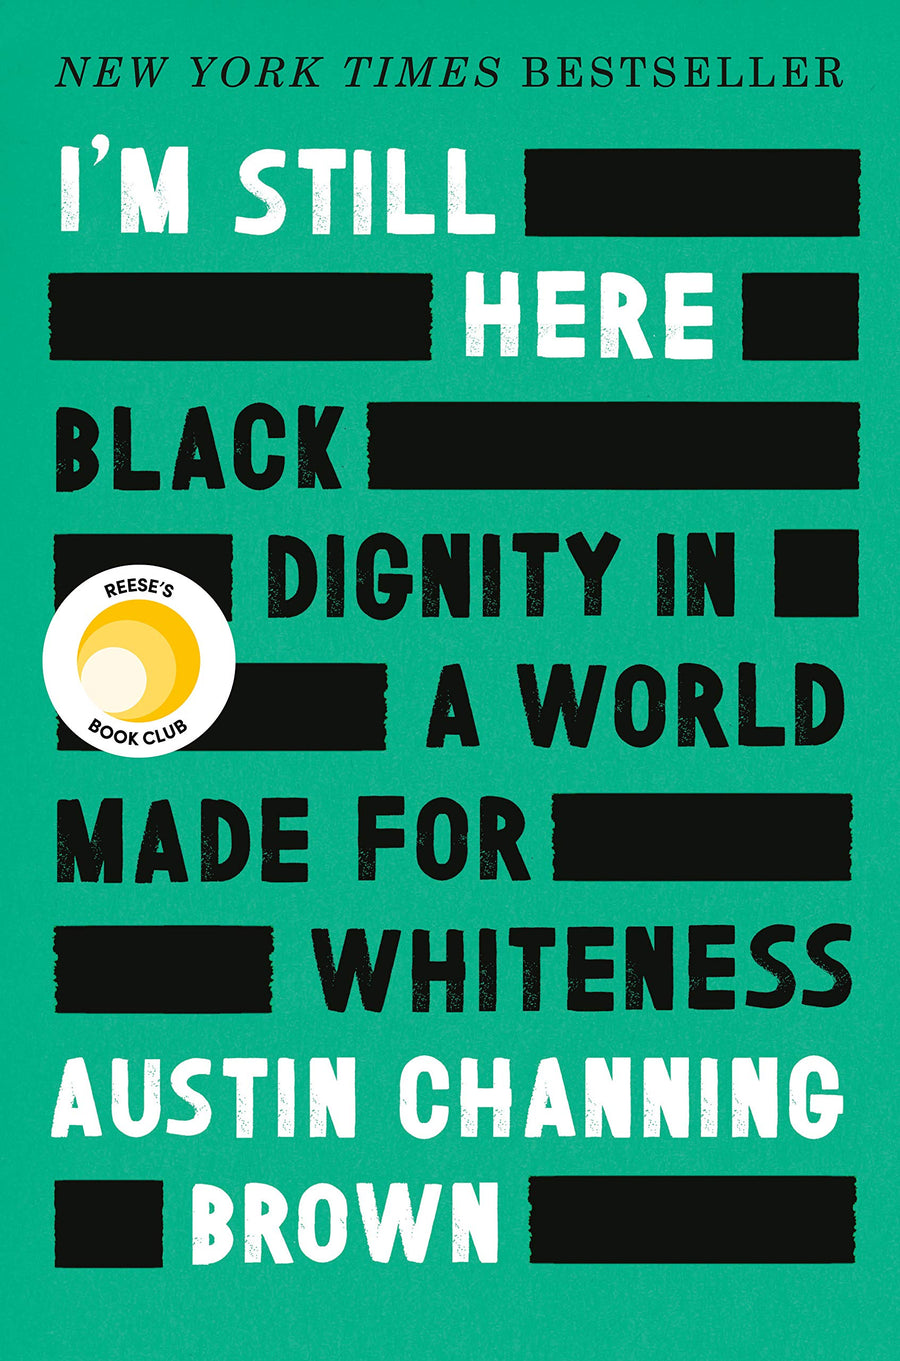 I'm Still Here: Black Dignity in a World Made for Whiteness - Leadership Books